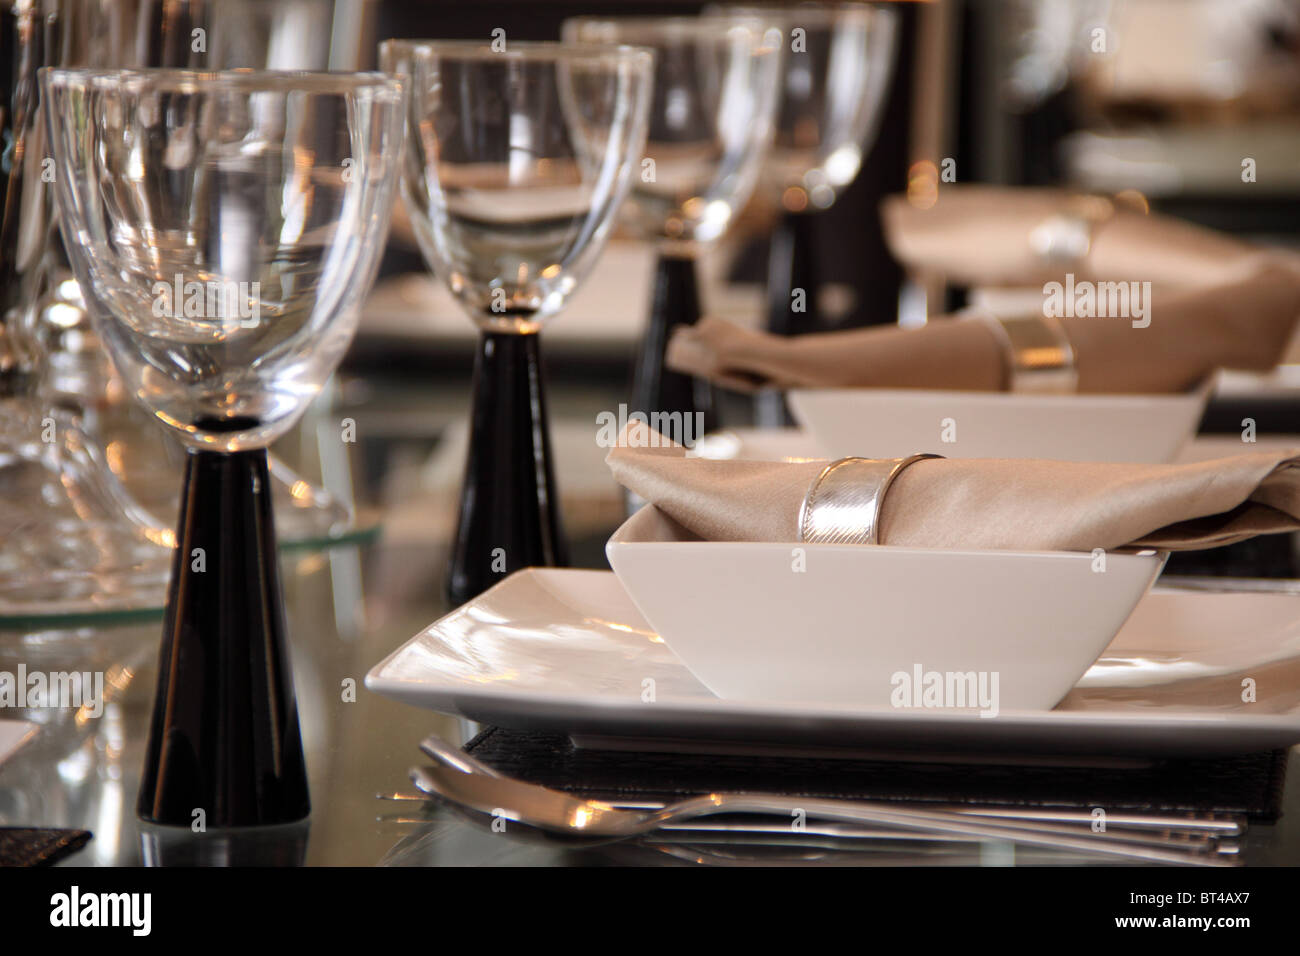 Dining table and glasses set for dinner - Stock Image